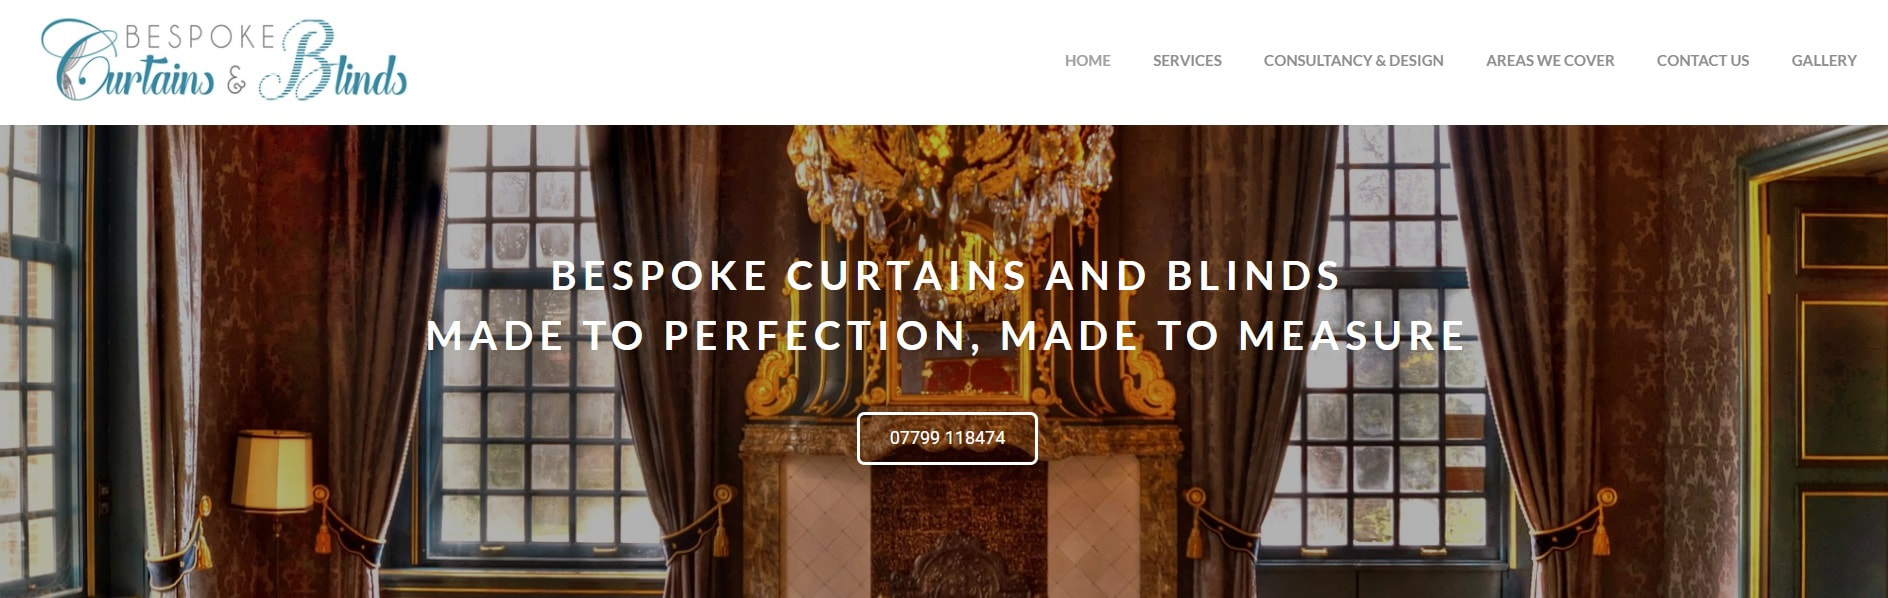 Screen shot of website called Bespoke Curtains and Blinds. Picture of a grand window that is dressed with beautifully draping curtains.